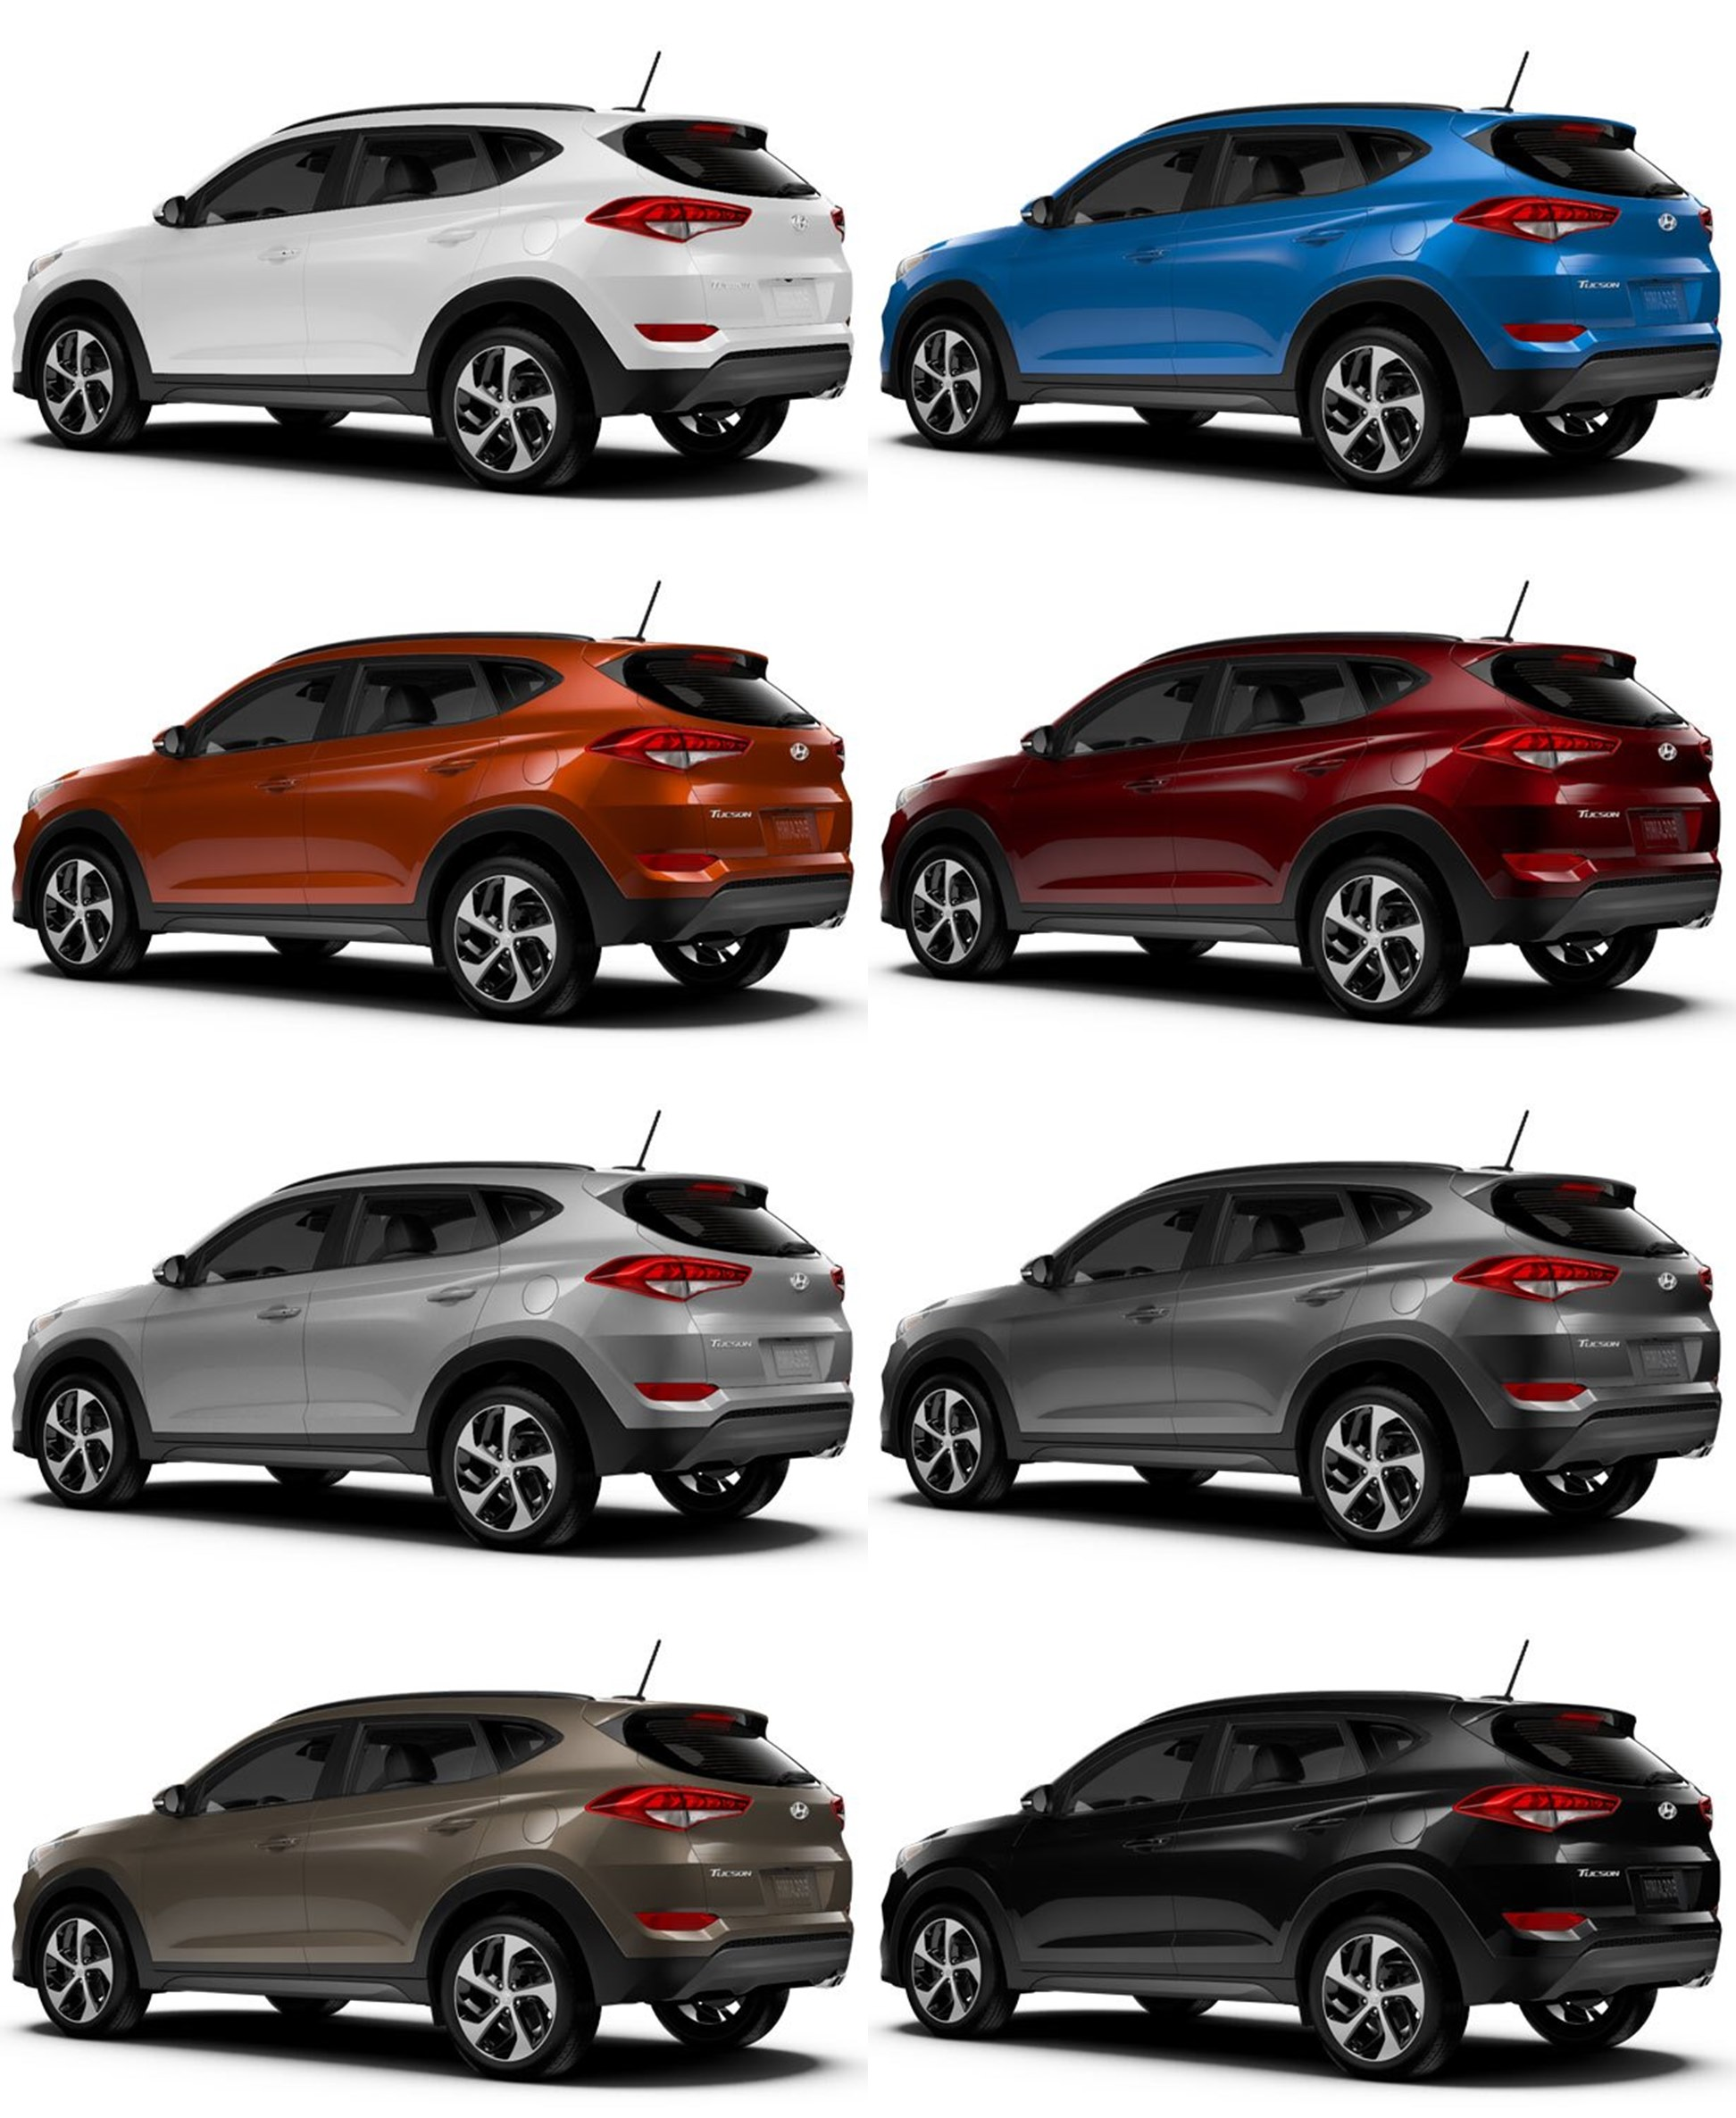 2016 Hyundai Tucson Review - photos | CarAdvice |Orange Hyundai Tucson 2016